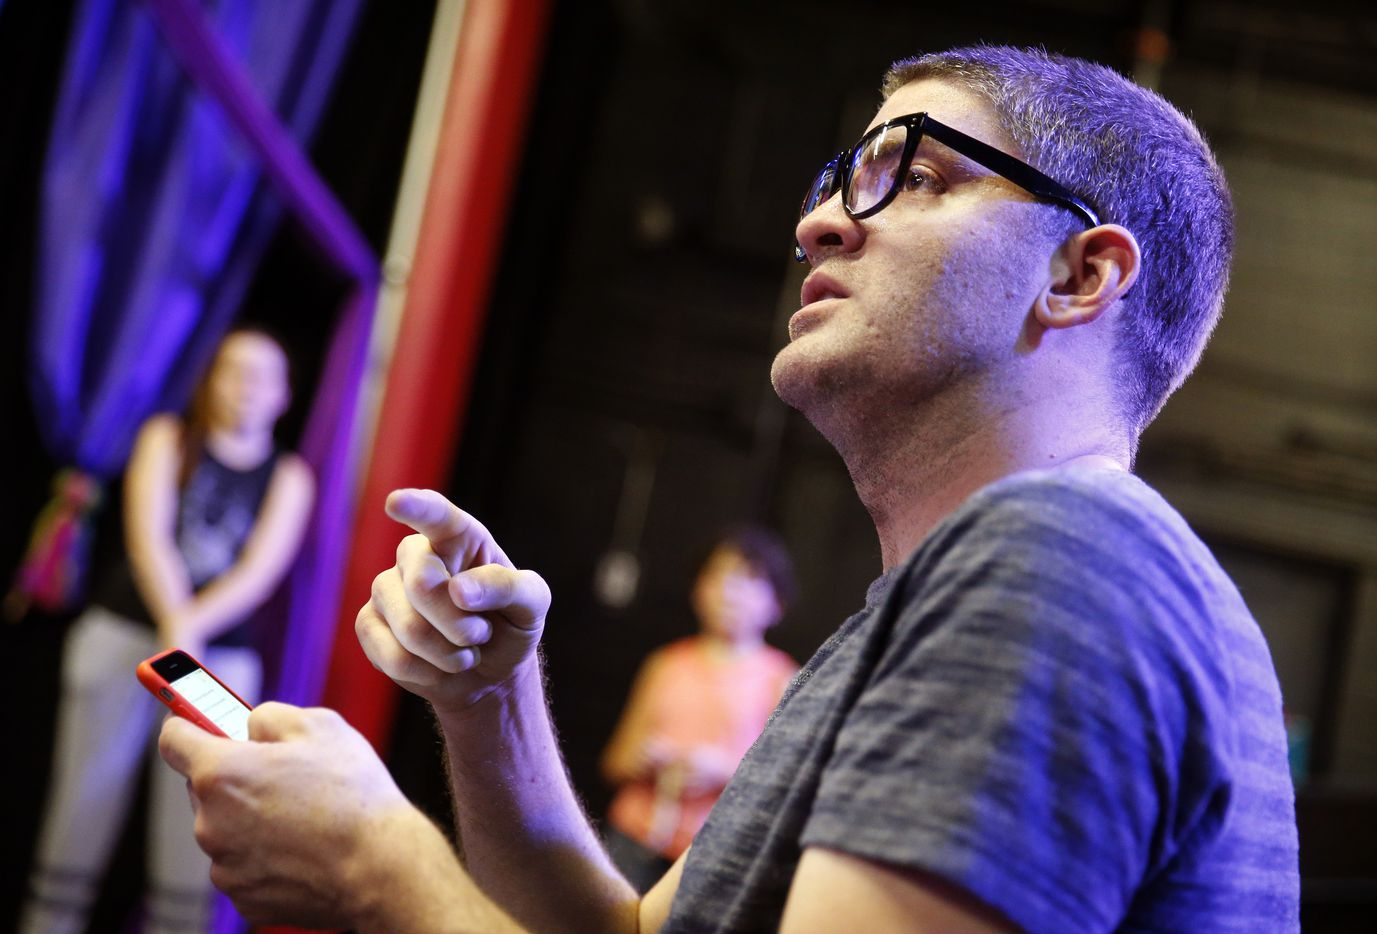 With his smartphone list of things to correct, director Derek Whitener asks for last-minute adjustments to be made during the Pippin dress rehearsal.